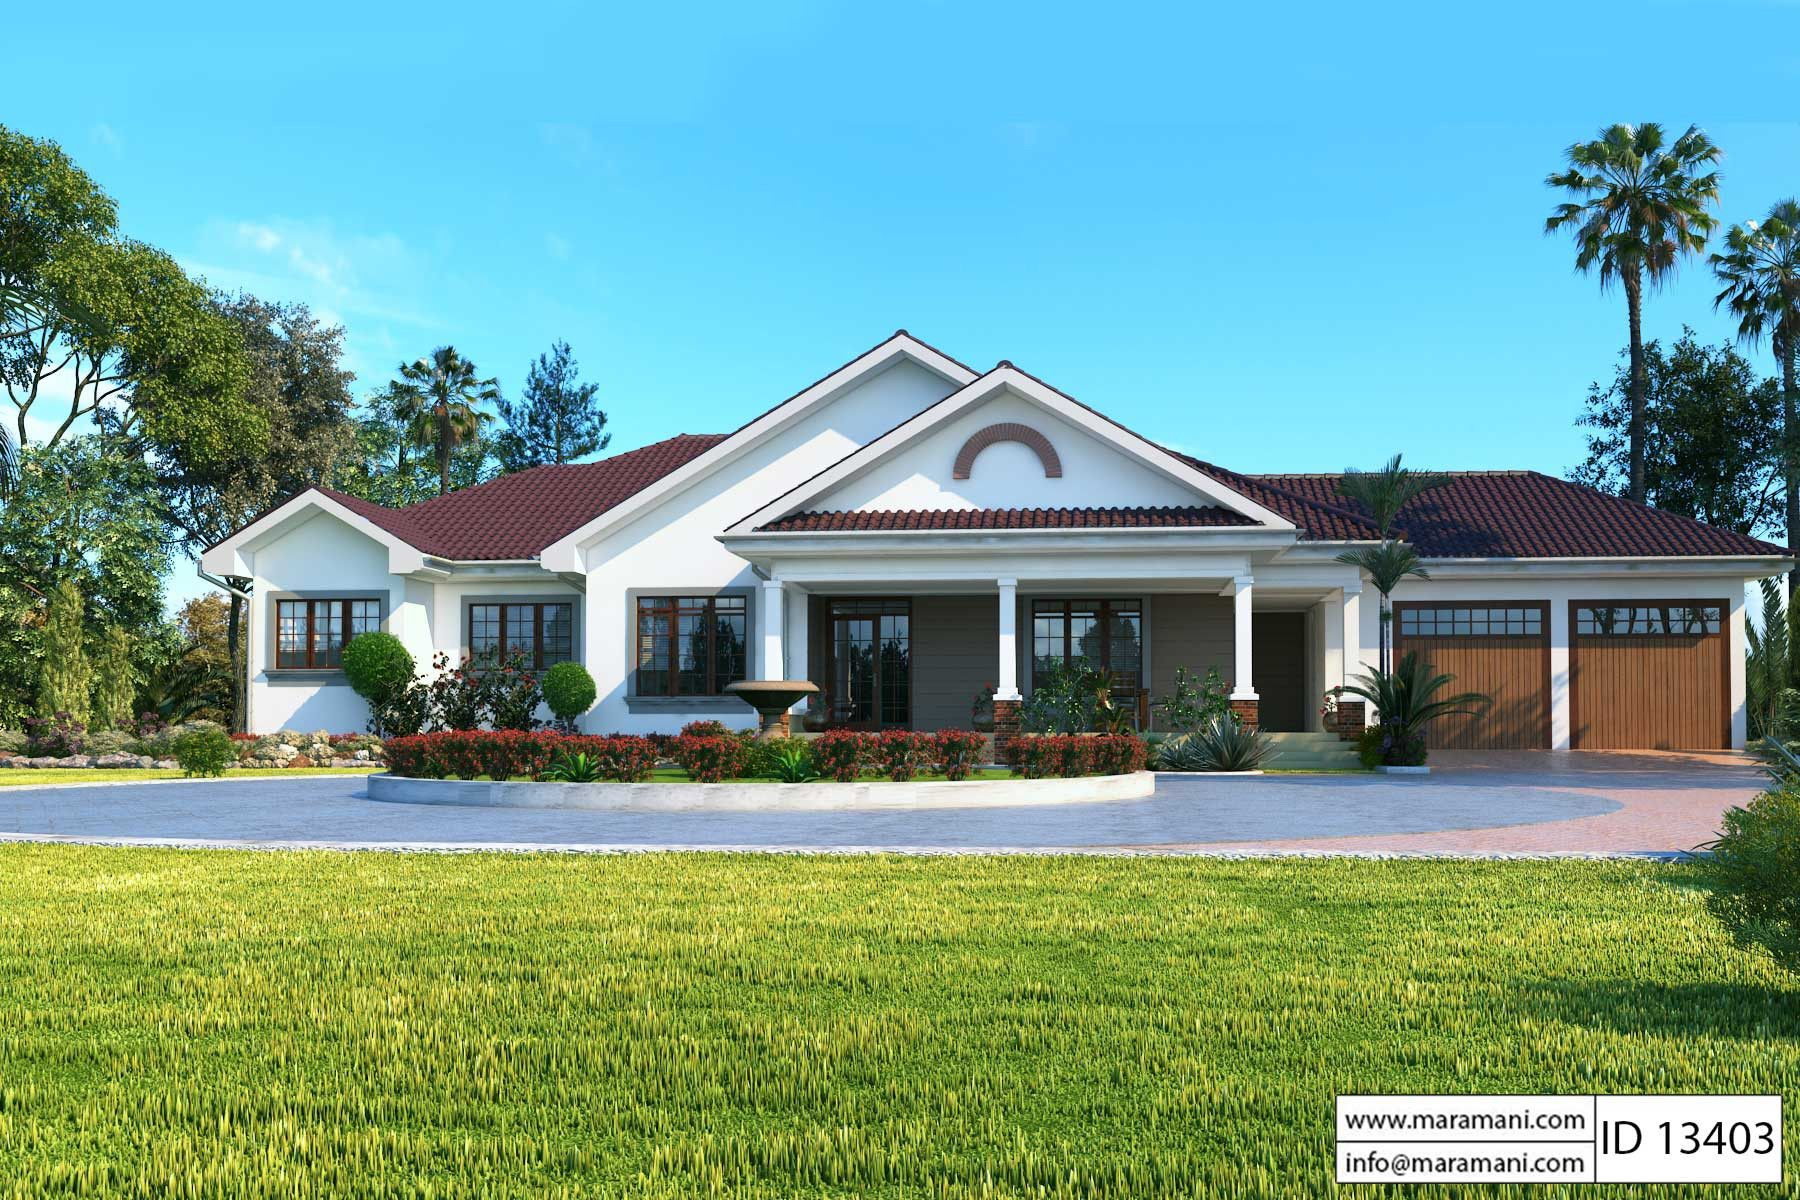 Modern House Plans & Designs for frica Maramani.com - ^